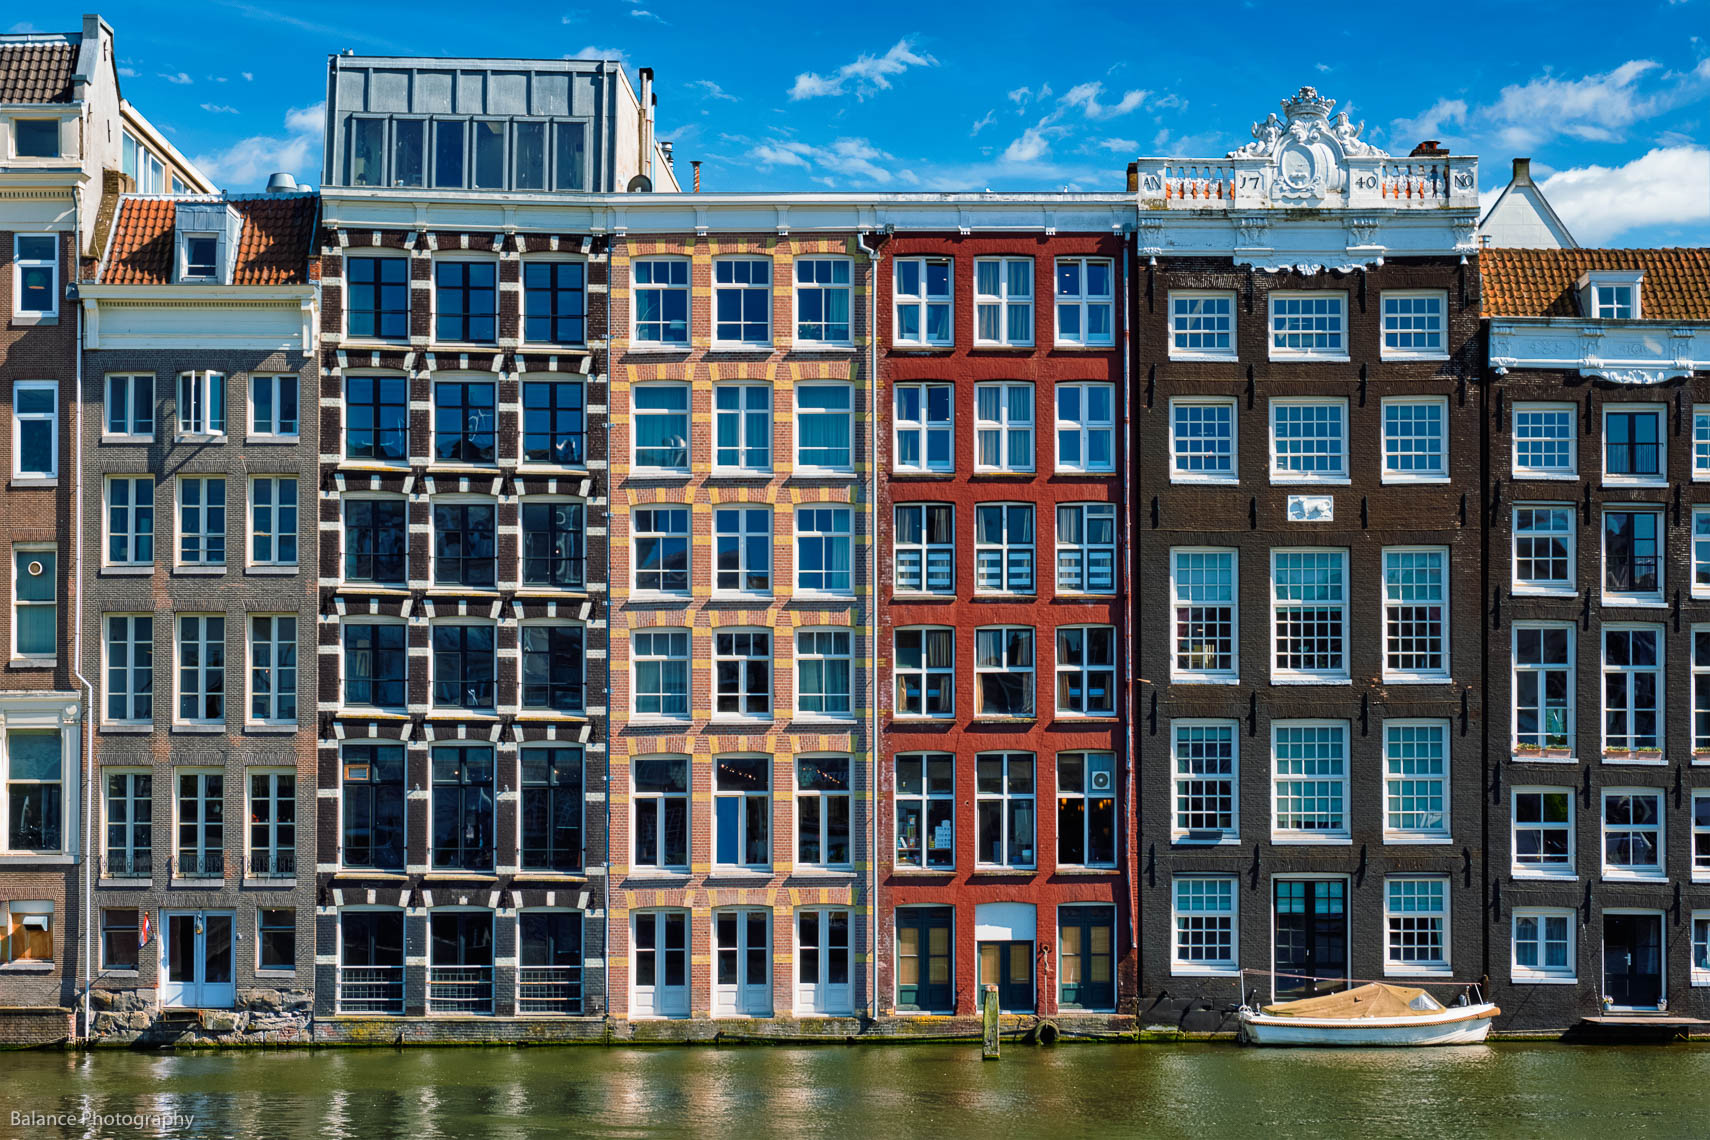 Amsterdam_Canal_Houses-and-Boats